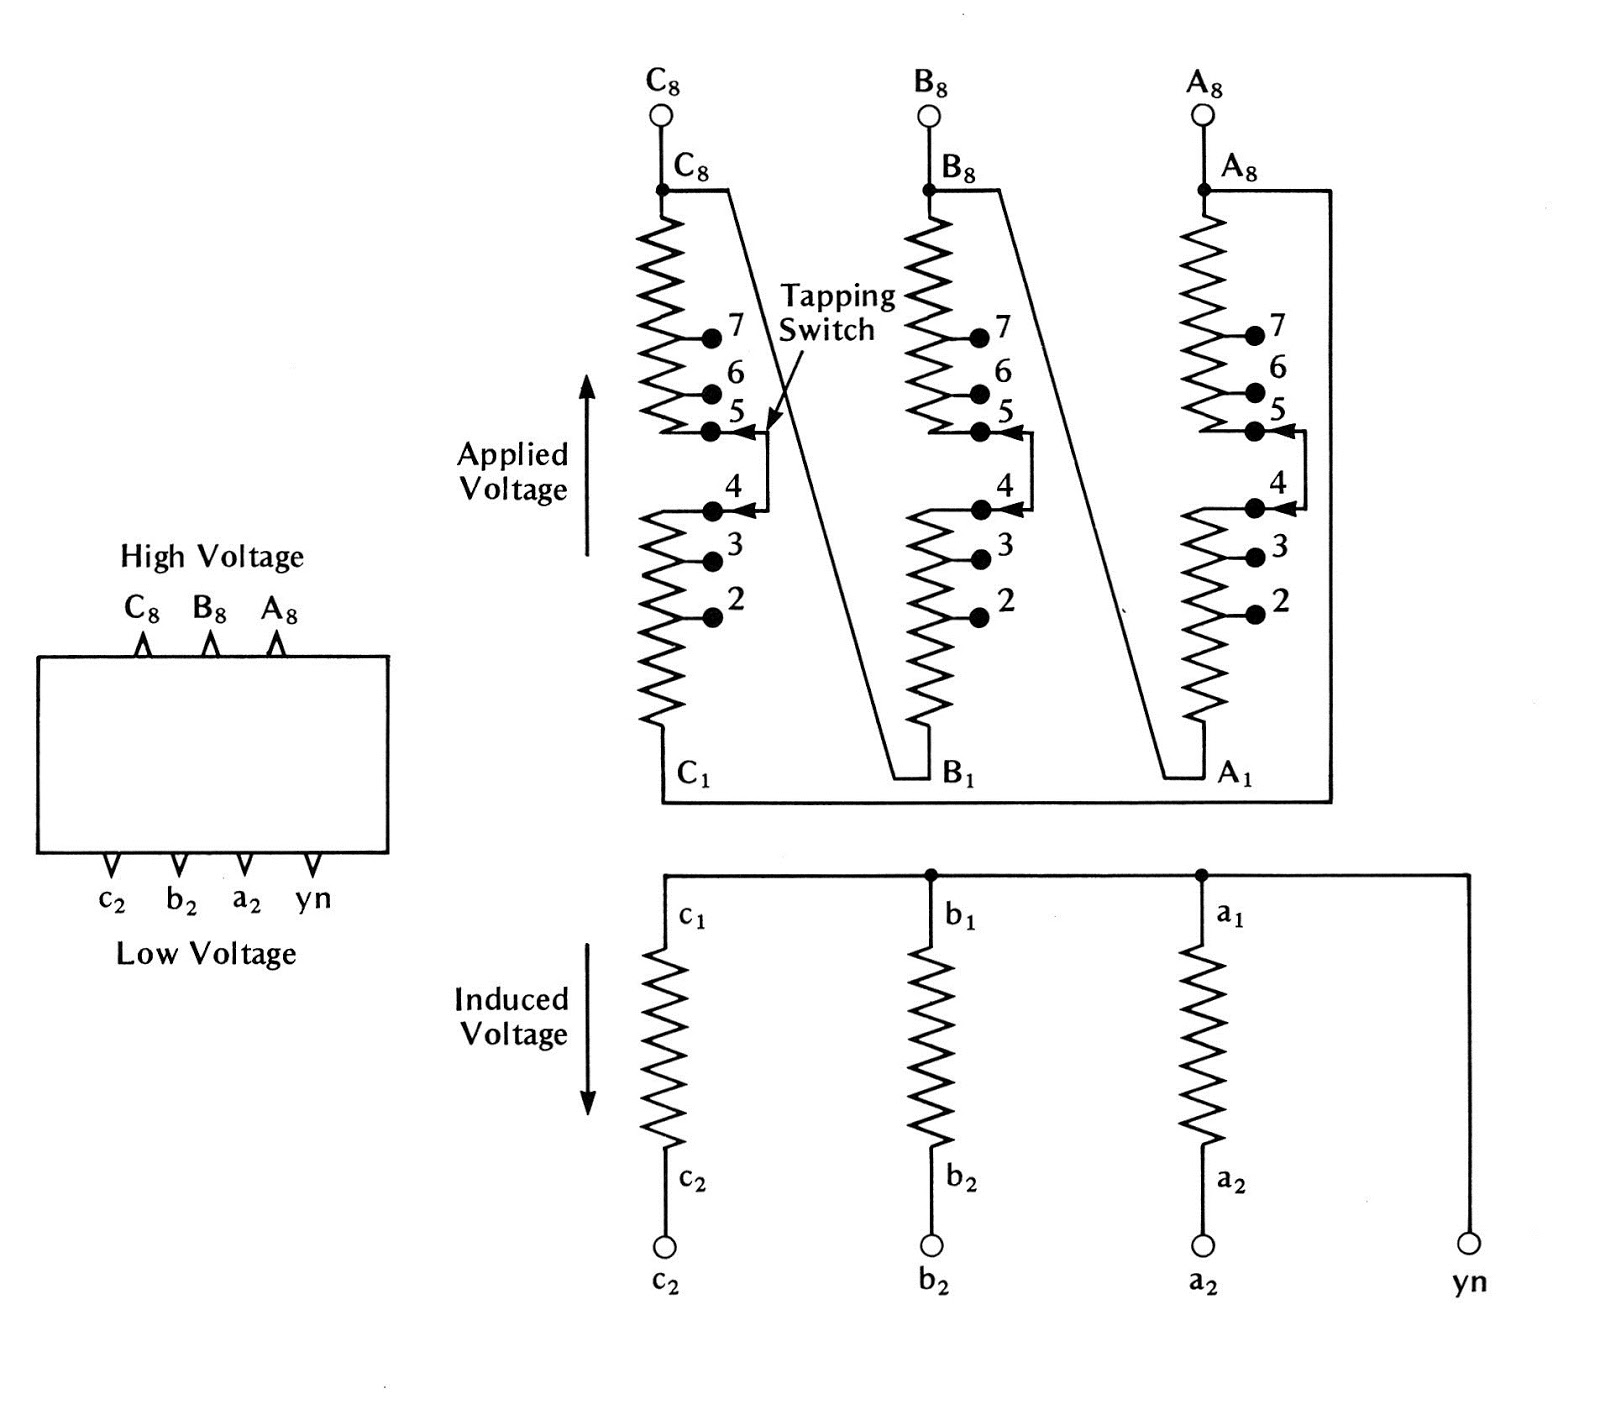 onan transformer wiring diagram wiring diagram transformer circuit diagram onan transformer wiring diagram wiring libraryfigure 1 [ 1600 x 1404 Pixel ]